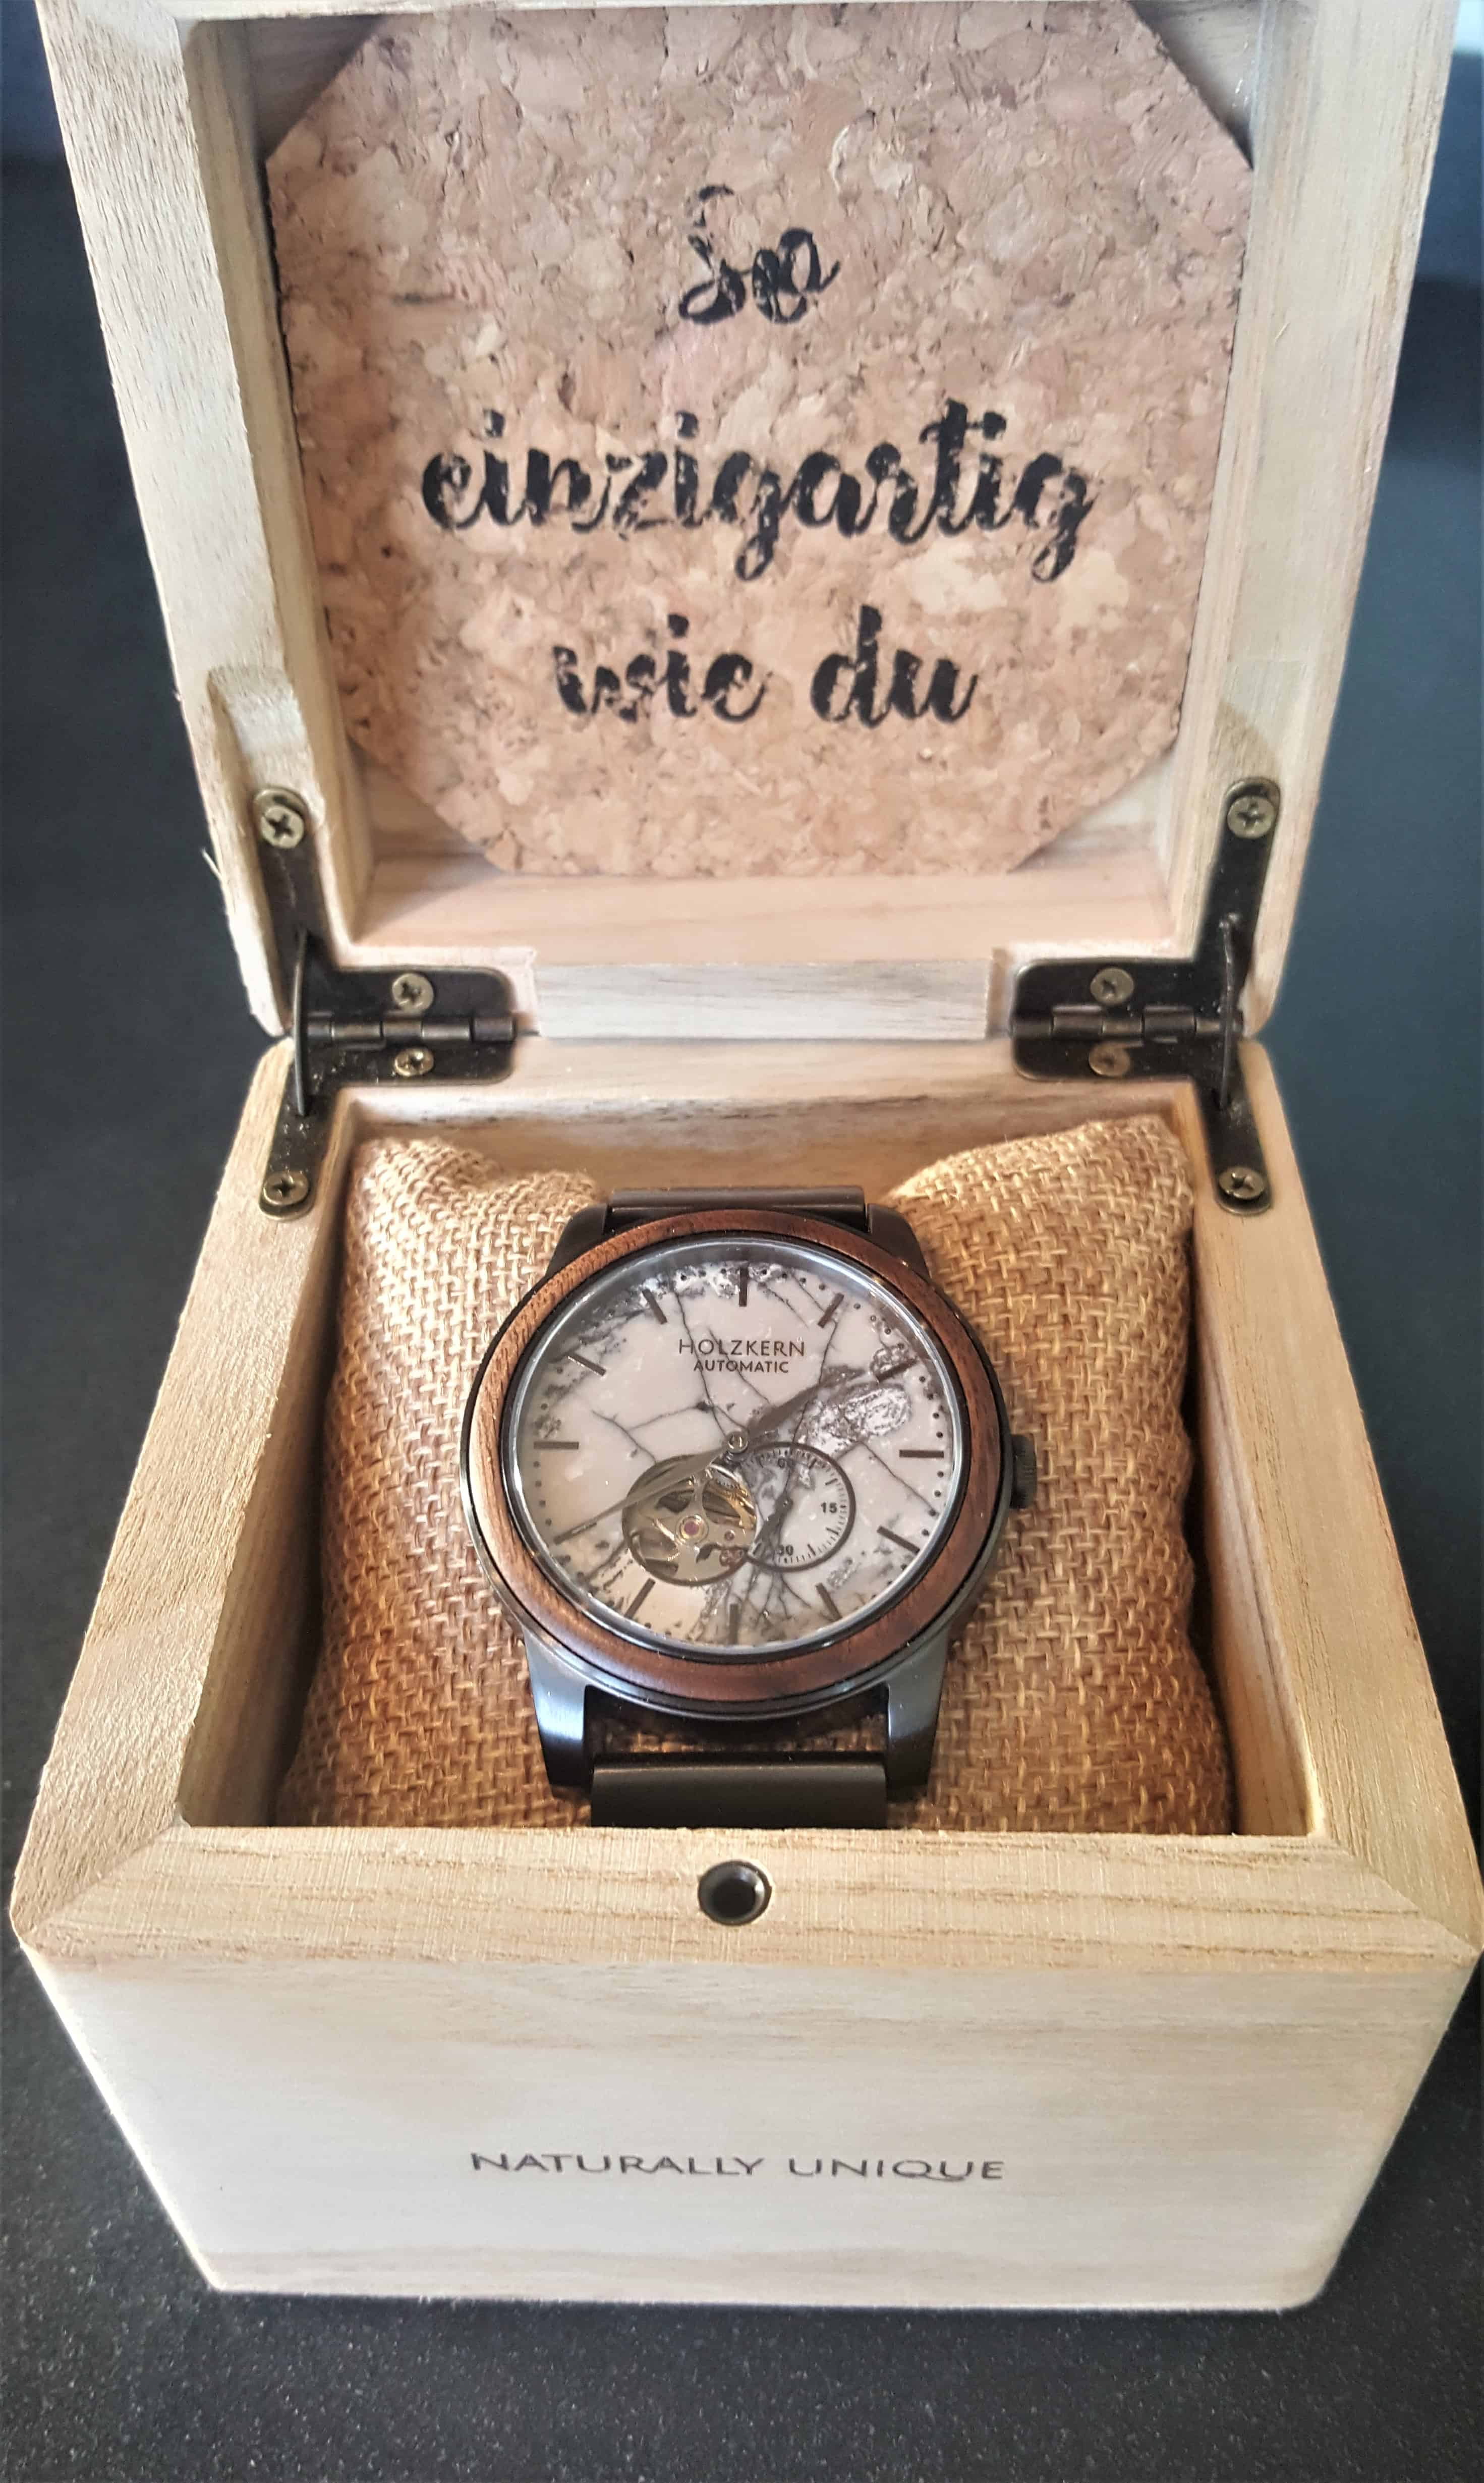 Hands On Holzkern Watch Review Chicago Automatic The